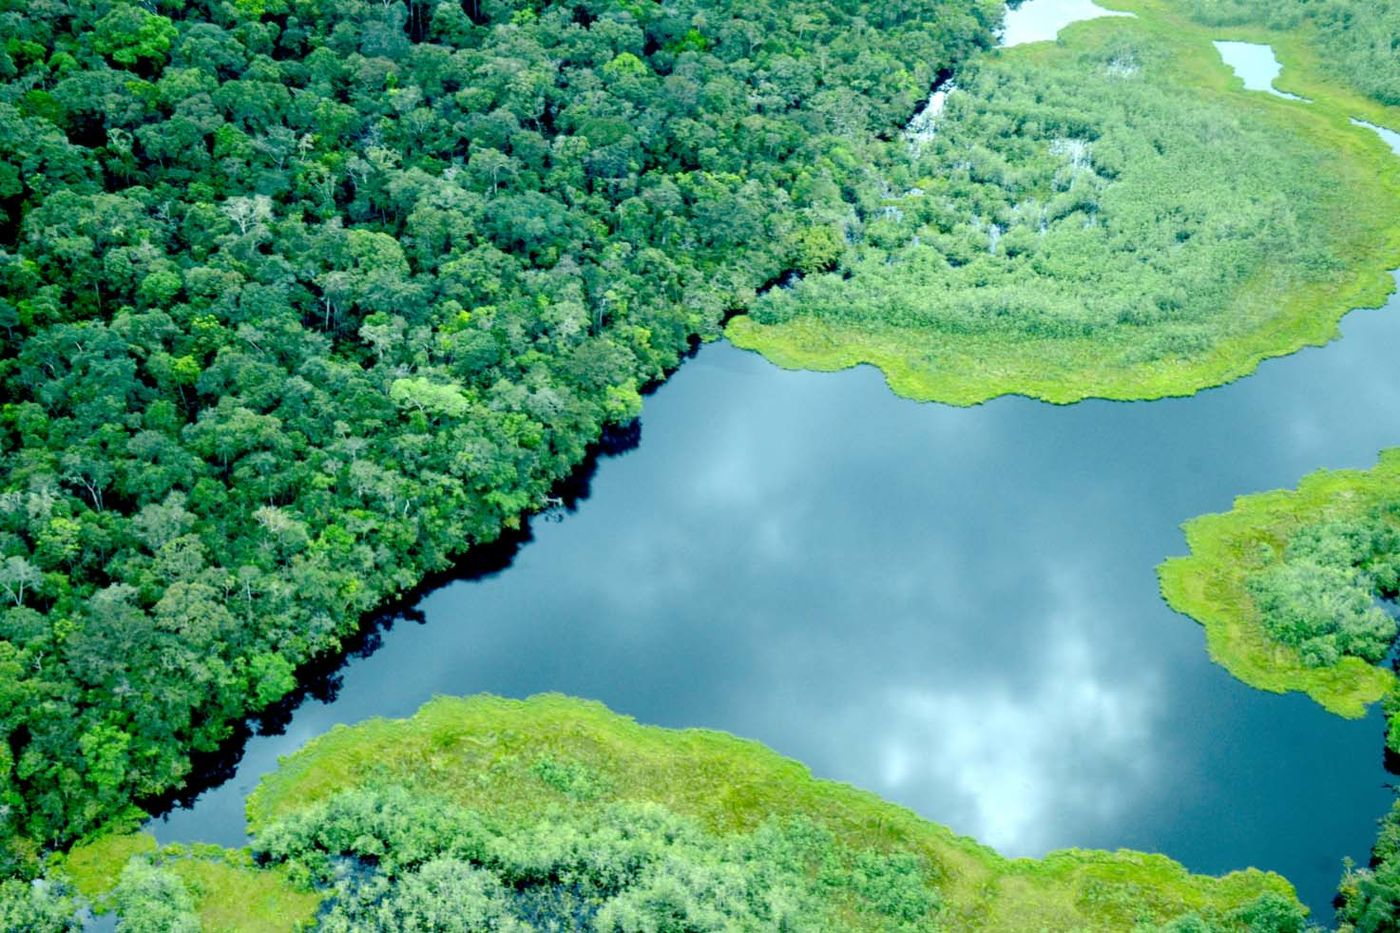 An aerial view of a landscape with a winding river and bright green trees.